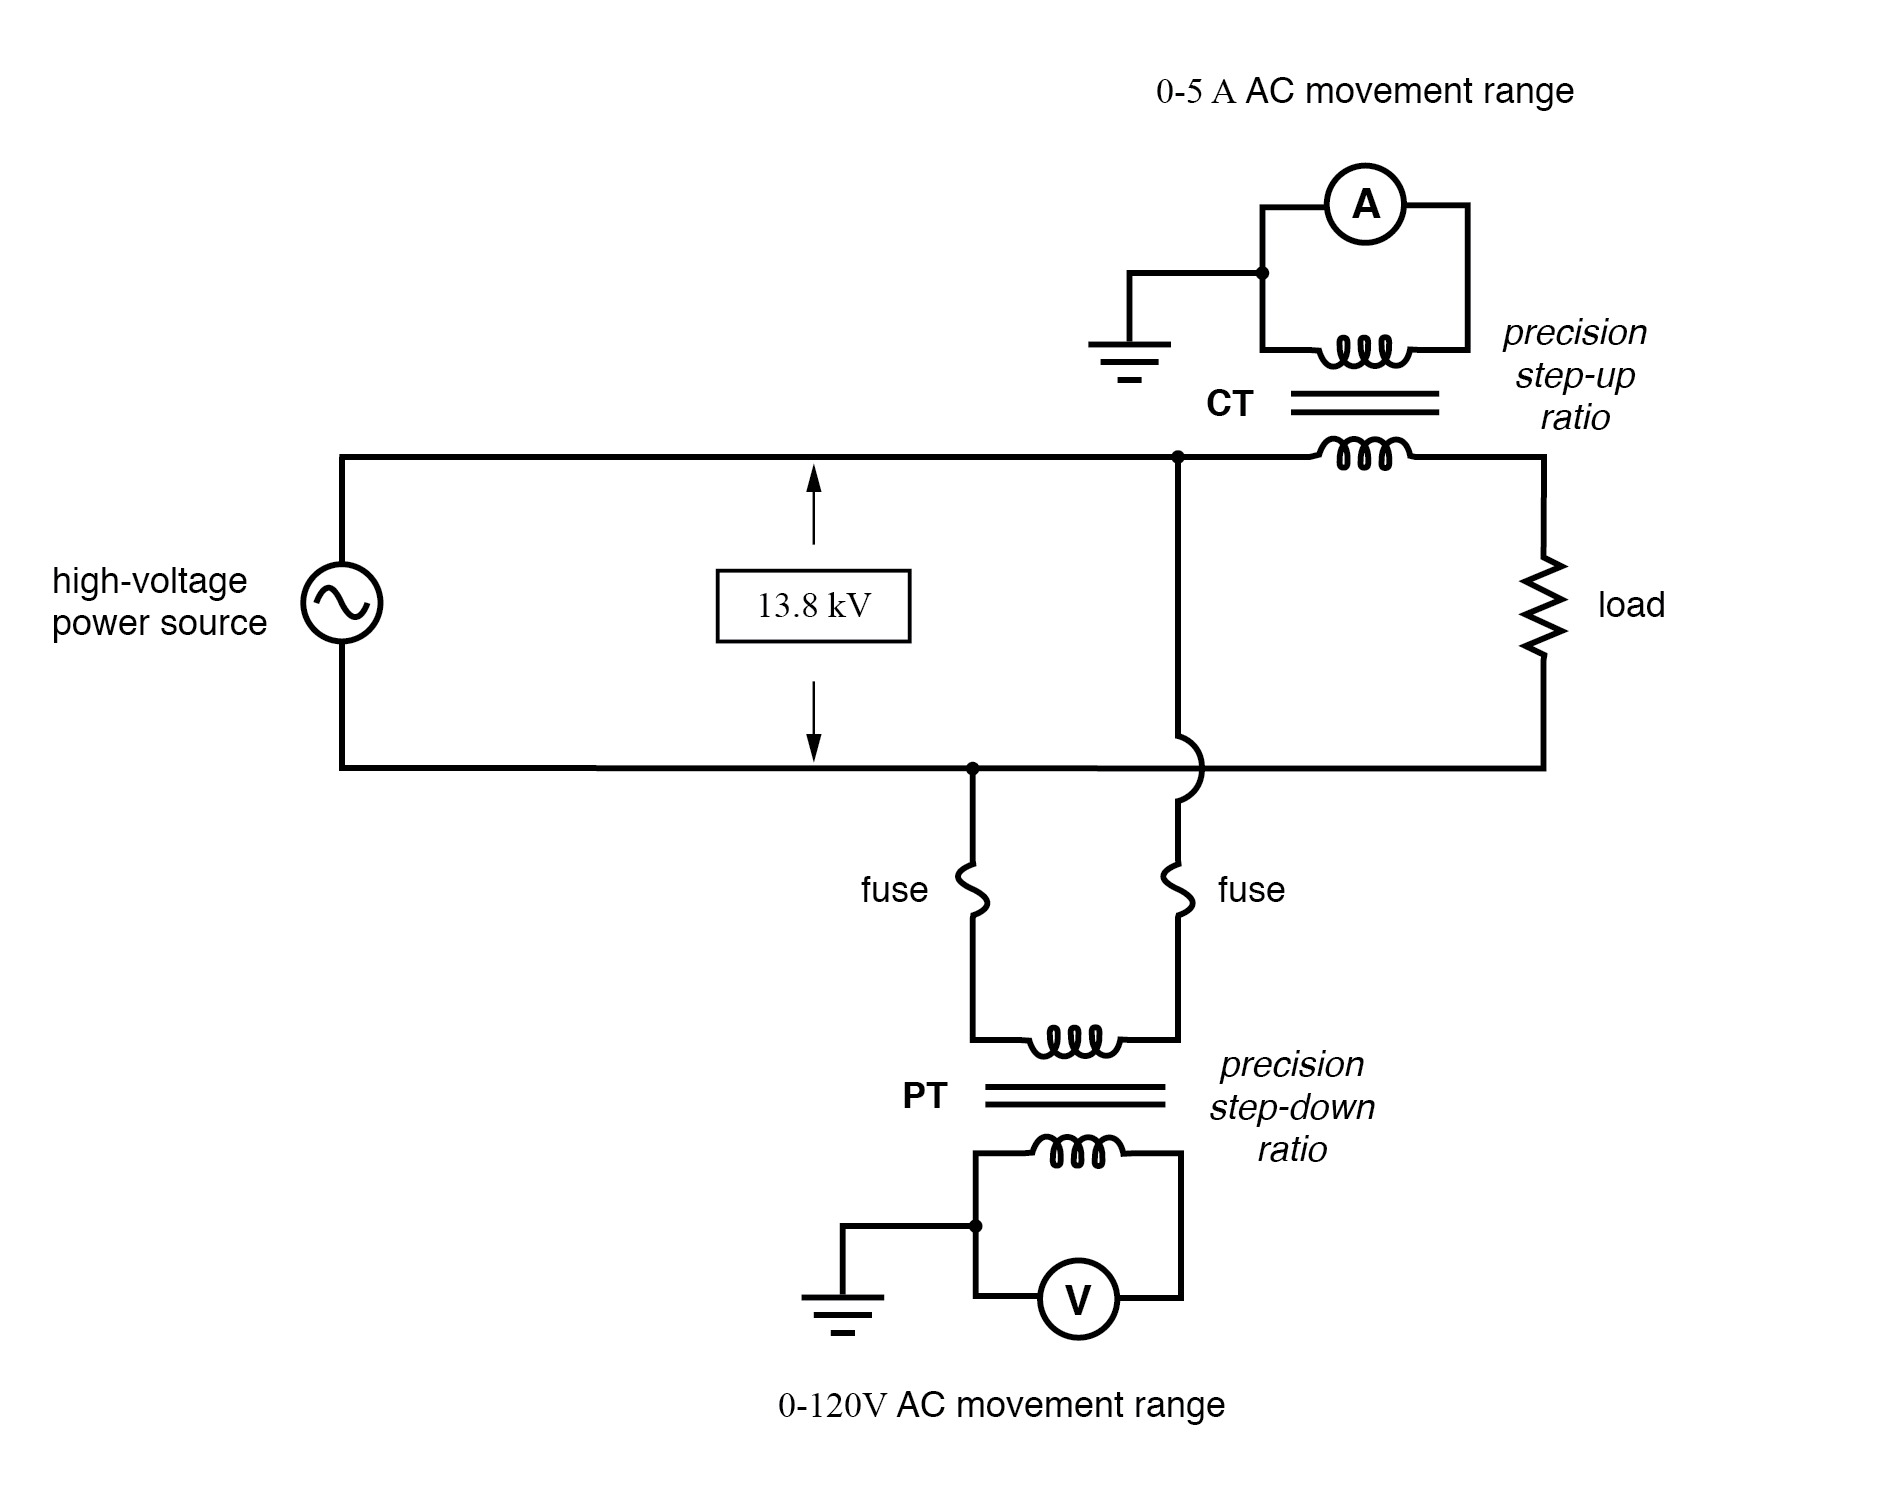 (CT) Current transformer scales current down. (PT) Potential transformer scales voltage down.